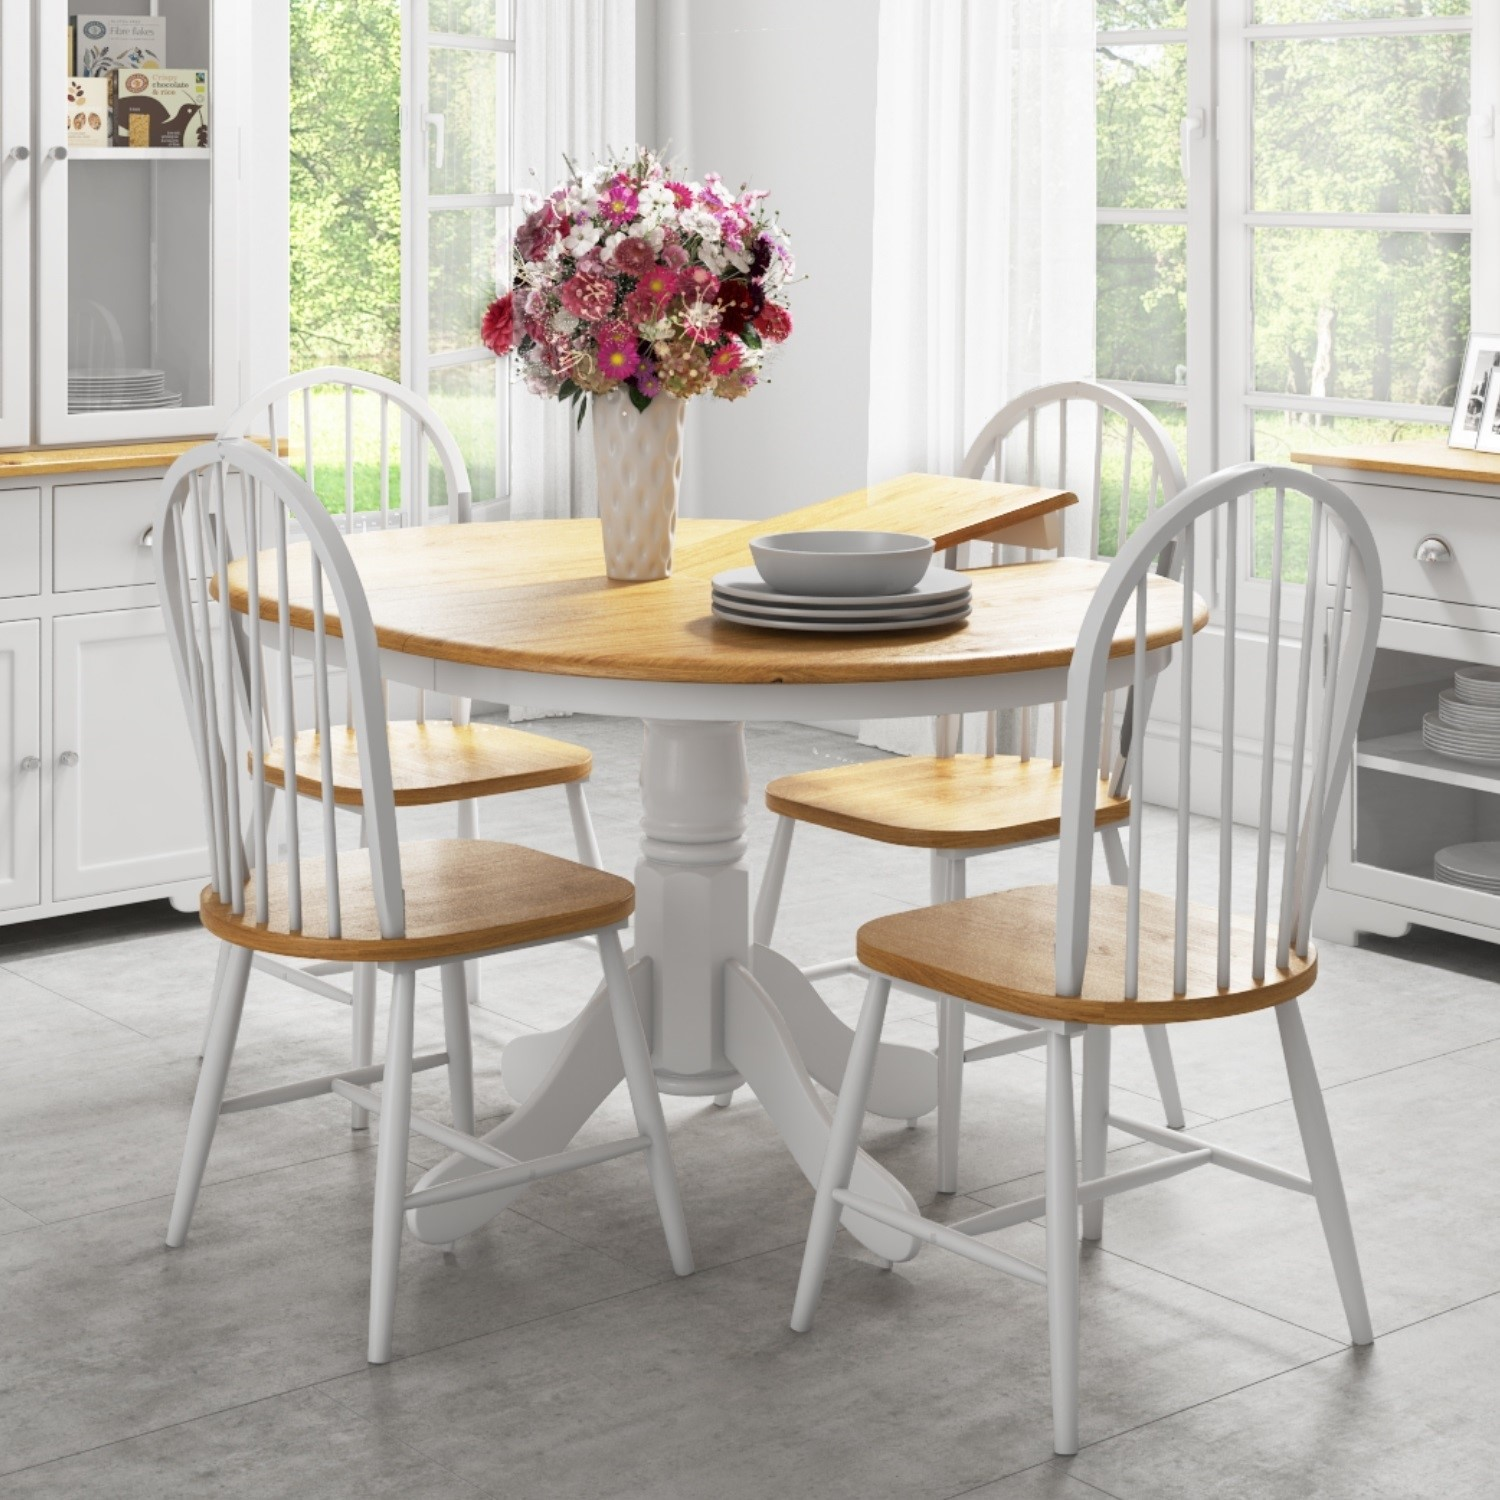 Round Extendable Dining Set with 4 Chairs in Oak & White - Rhode Island